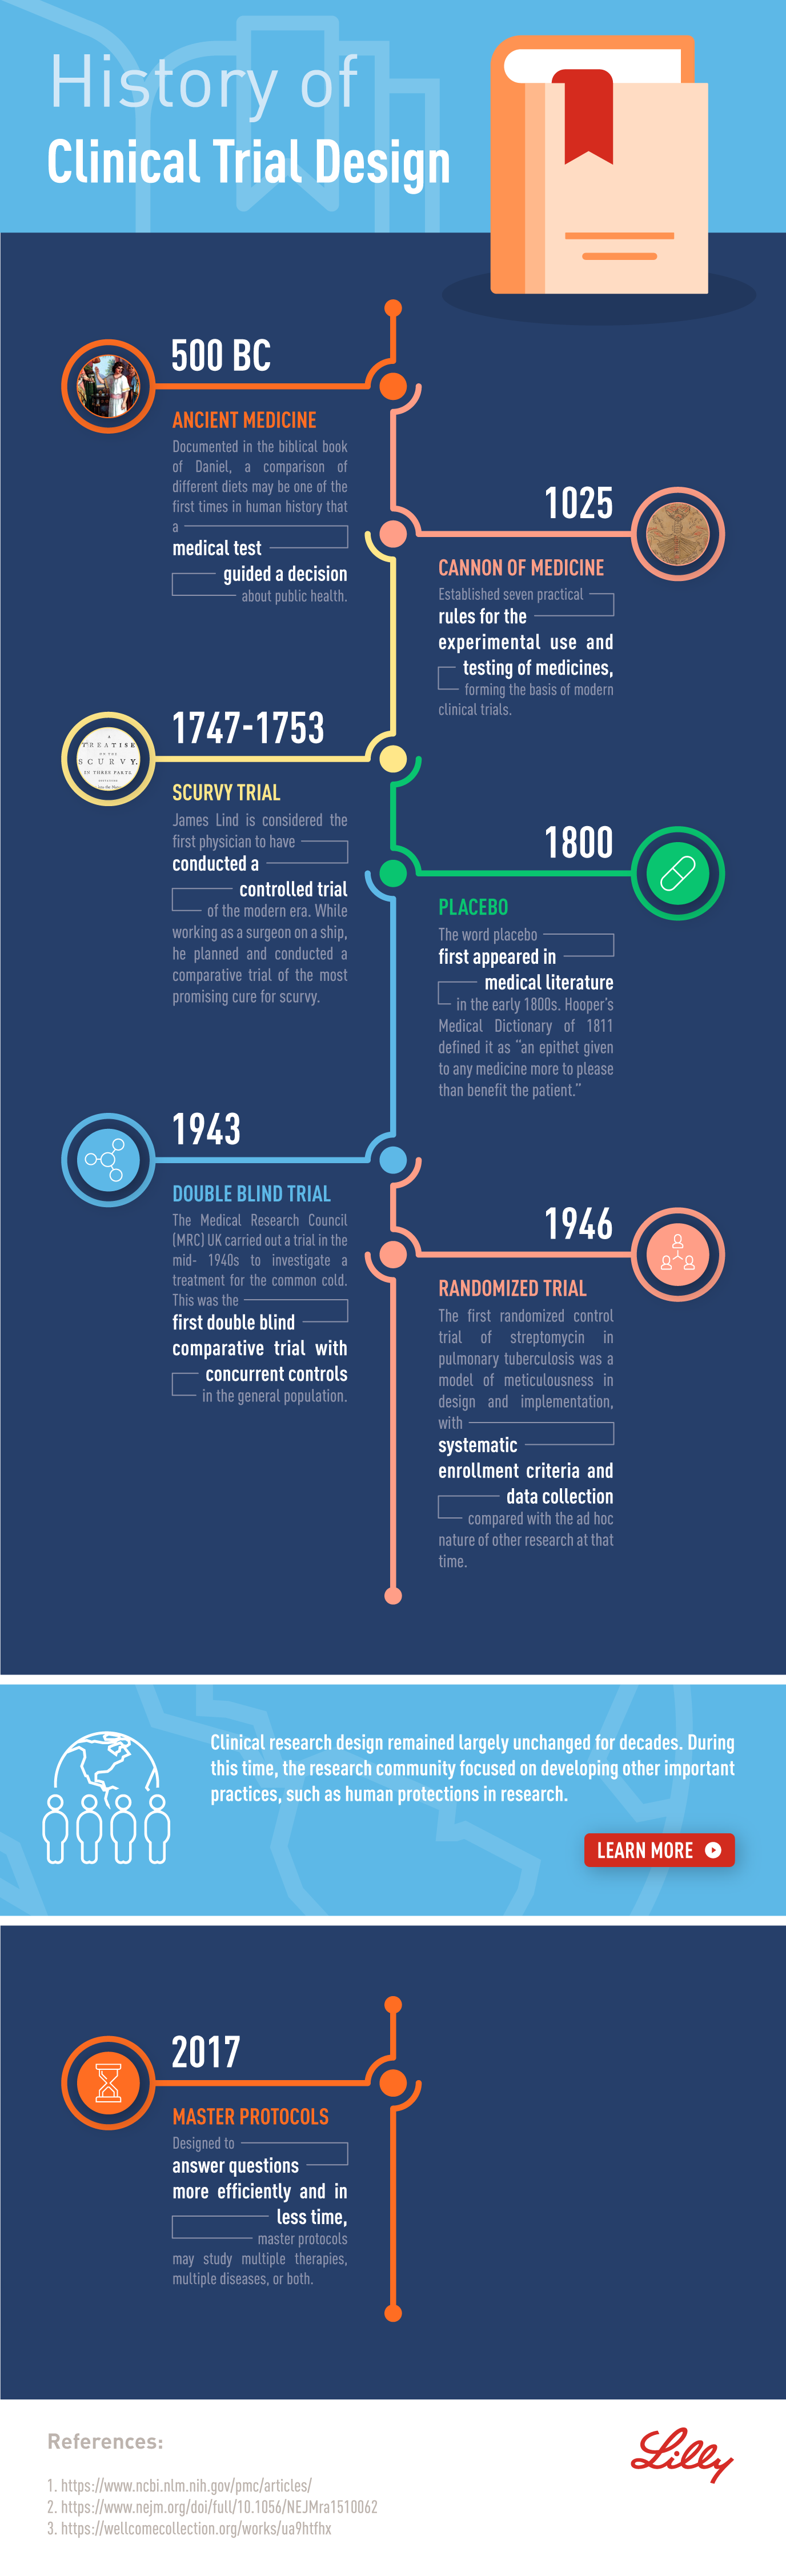 HistoryOfClinicalTrials ClinicalTrialDesign Combined Infographic 28Oct2019-01